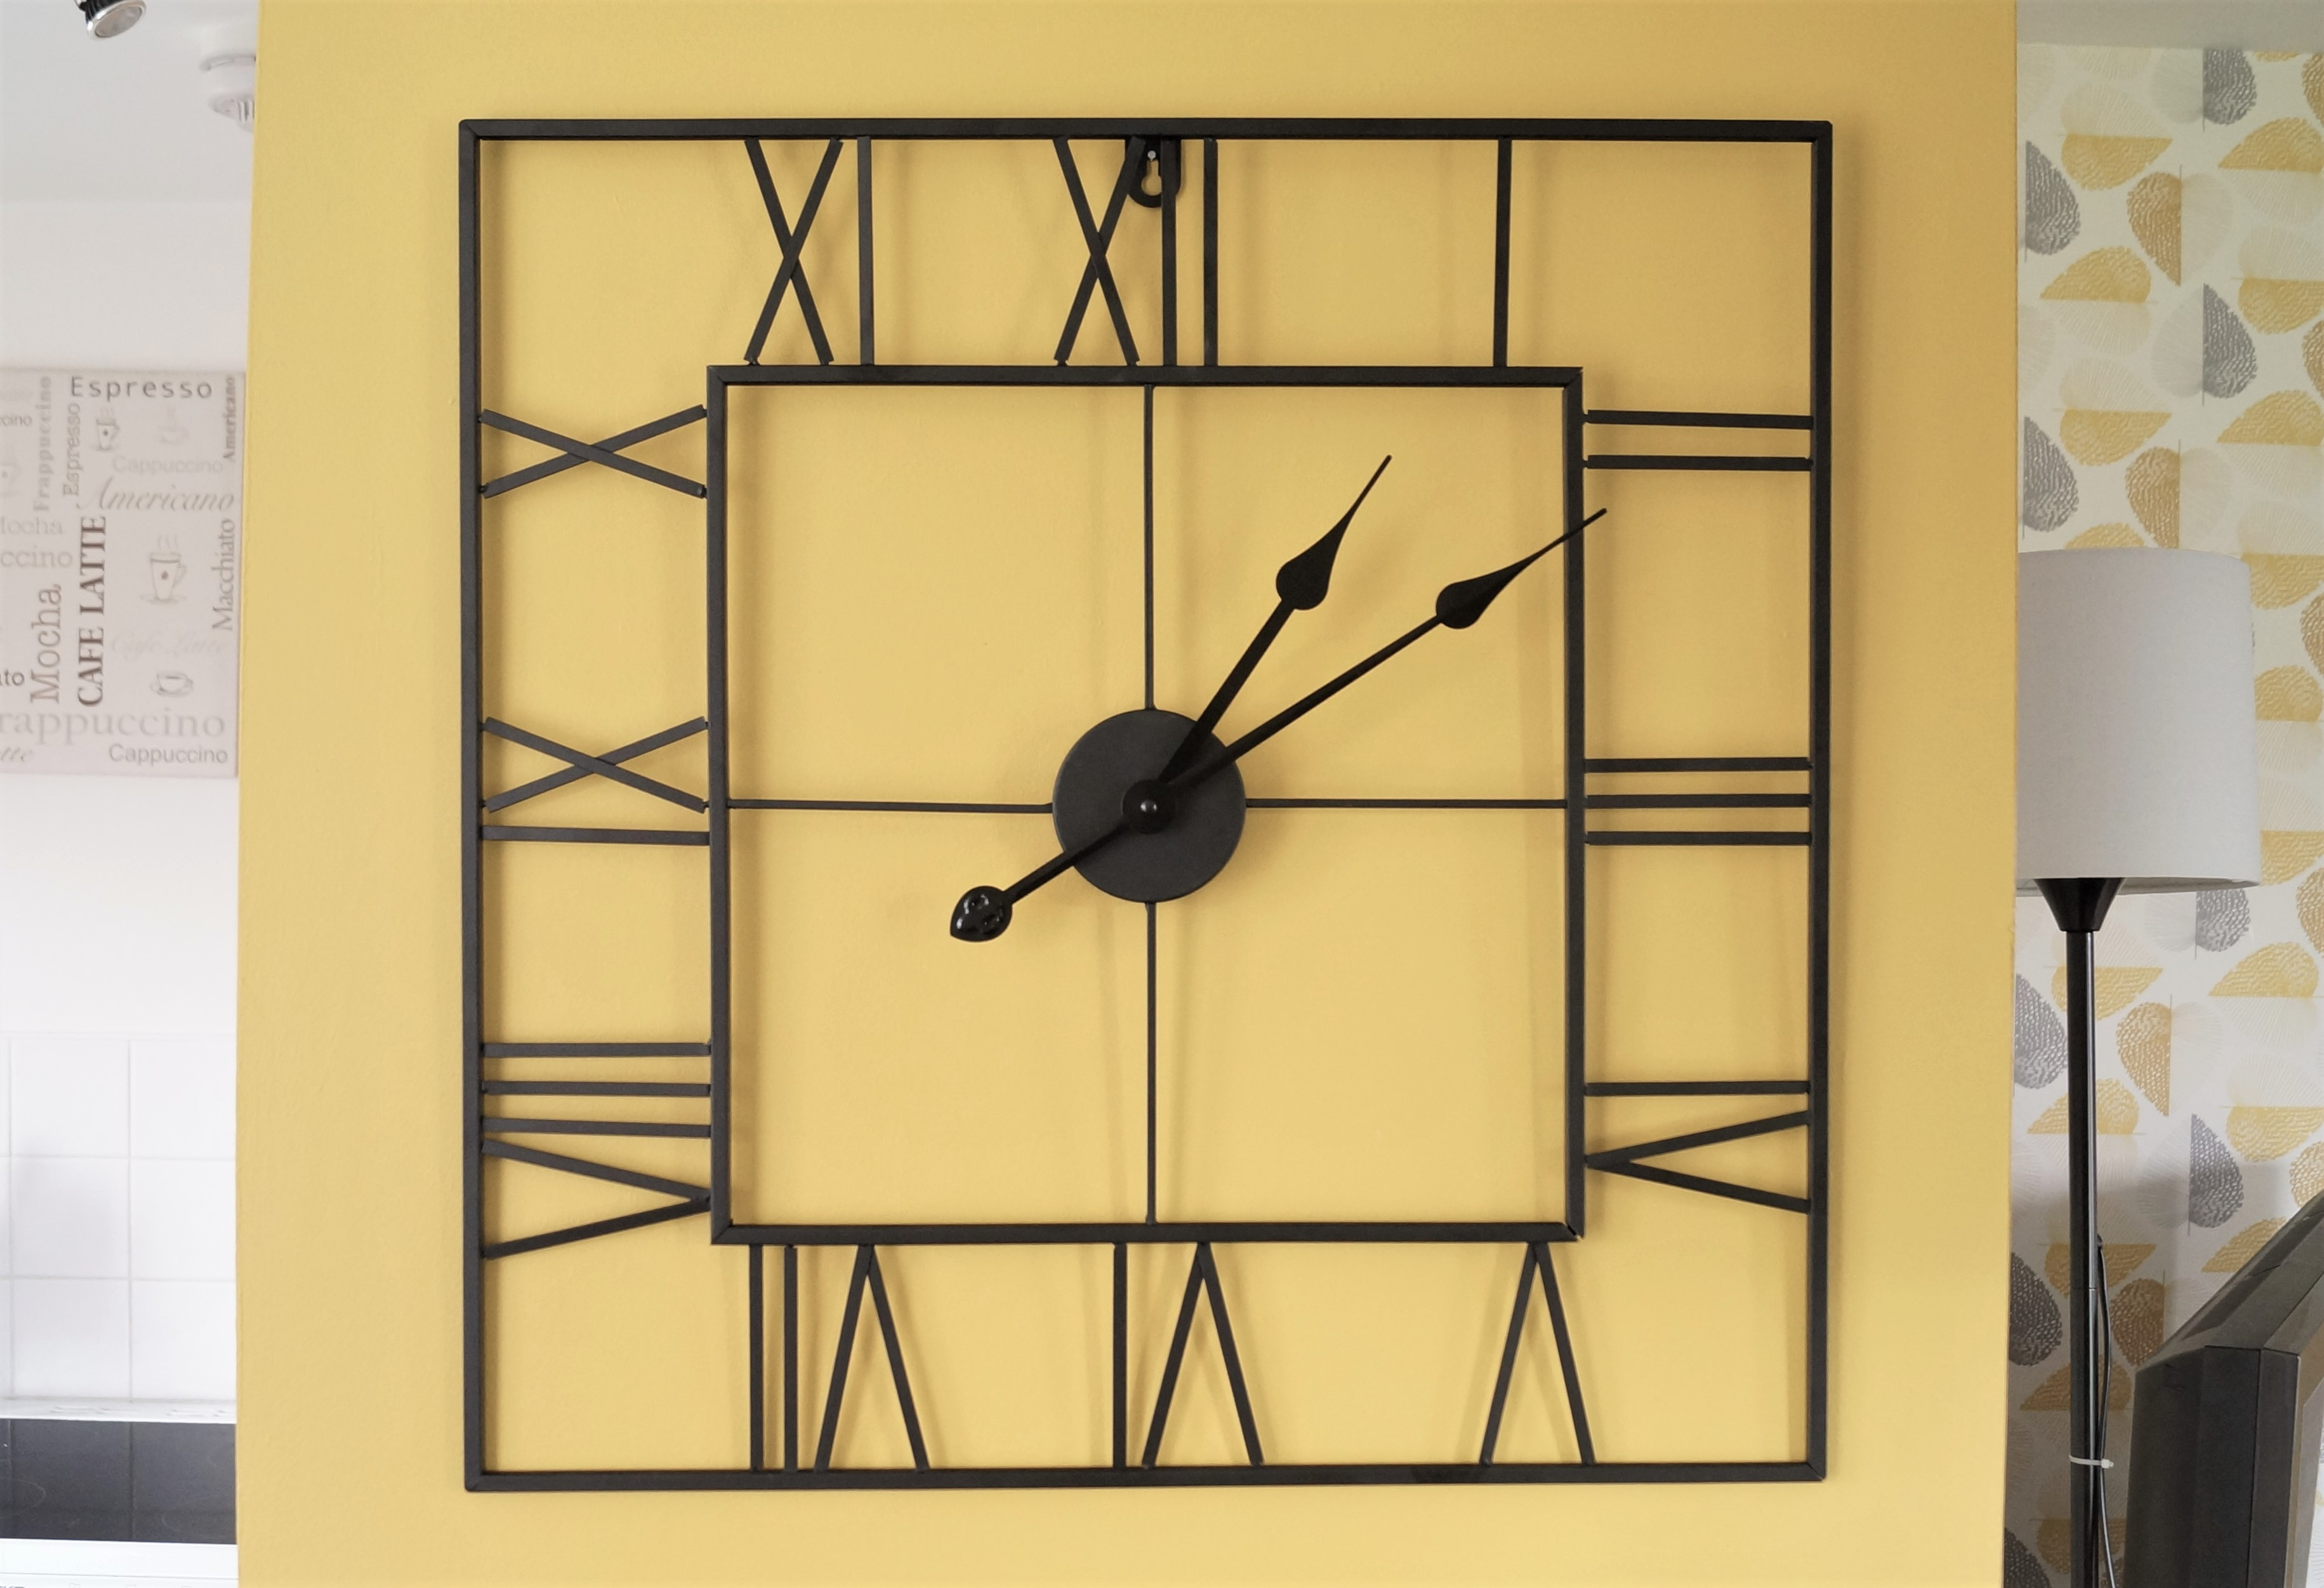 Fullsize Of Large Square Clocks For Walls